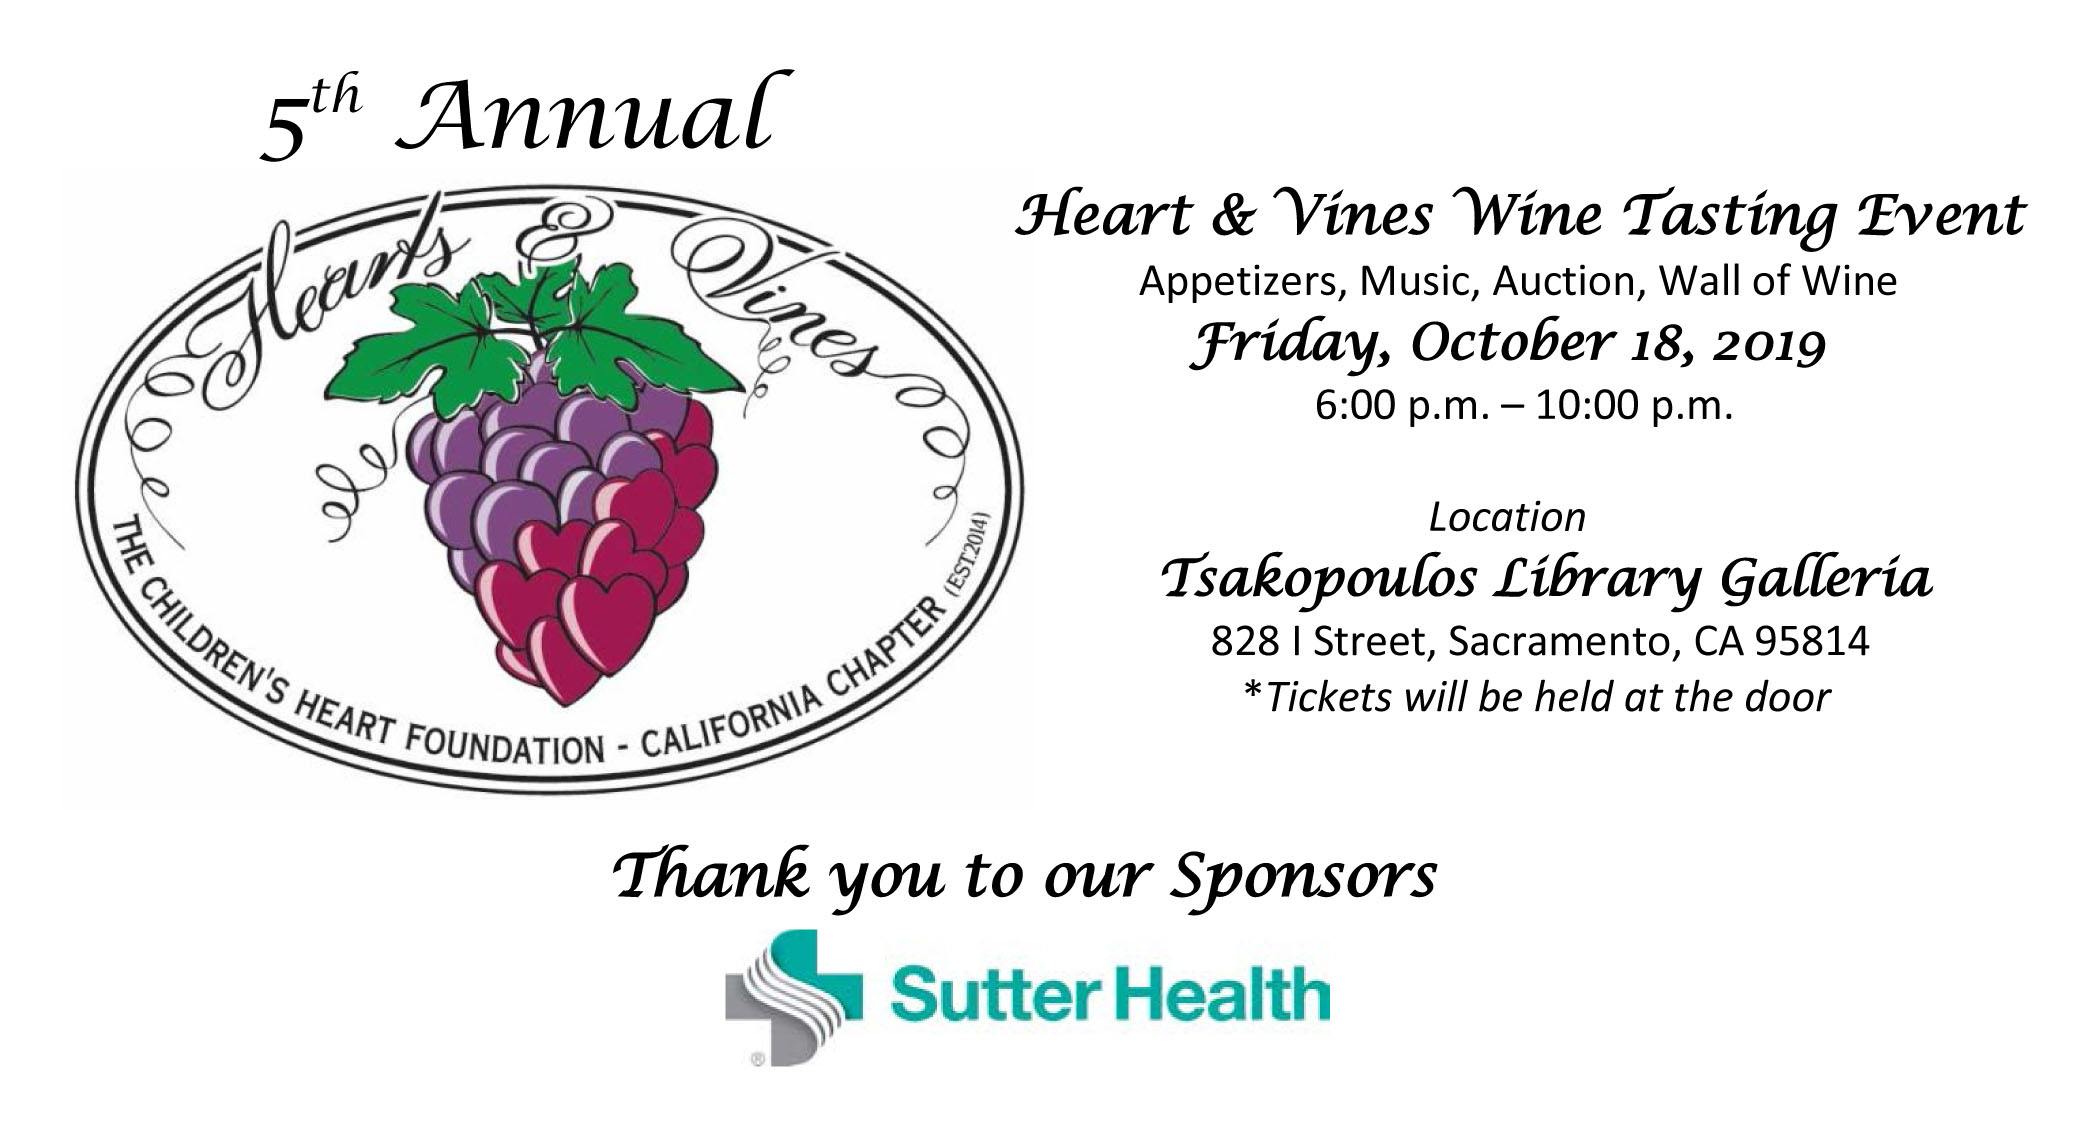 5th Annual Hearts & Vines Wine Tasting Event (California)